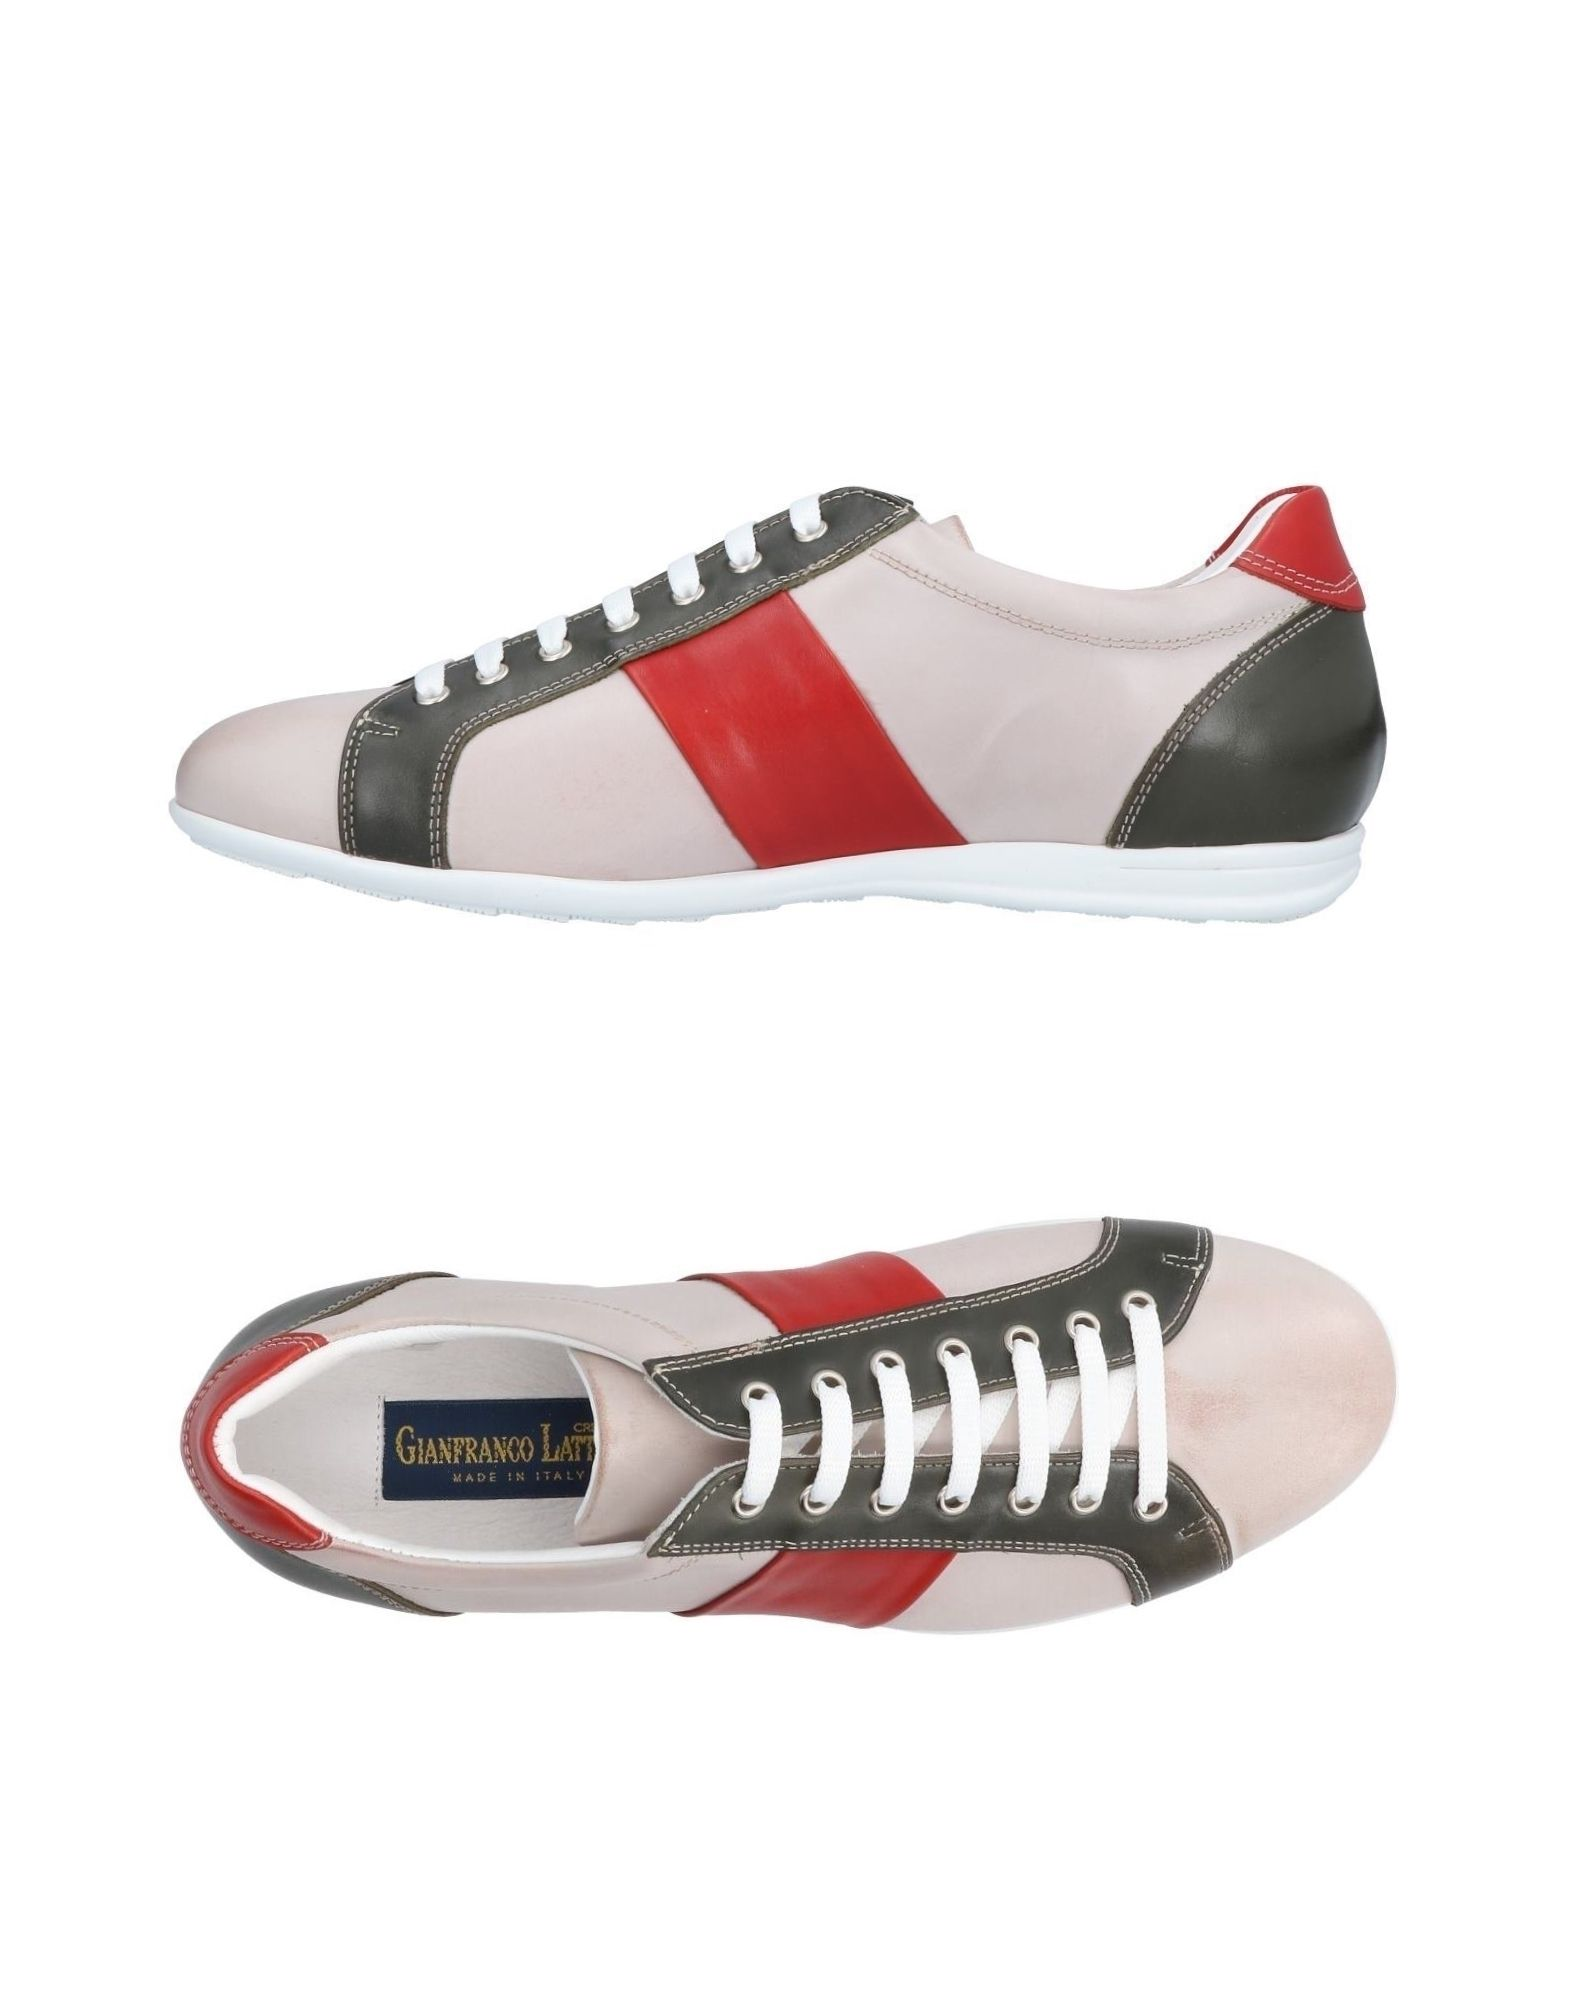 Sneakers Gianfranco Lattanzi Homme - Sneakers Gianfranco Lattanzi  Beige Remise de marque